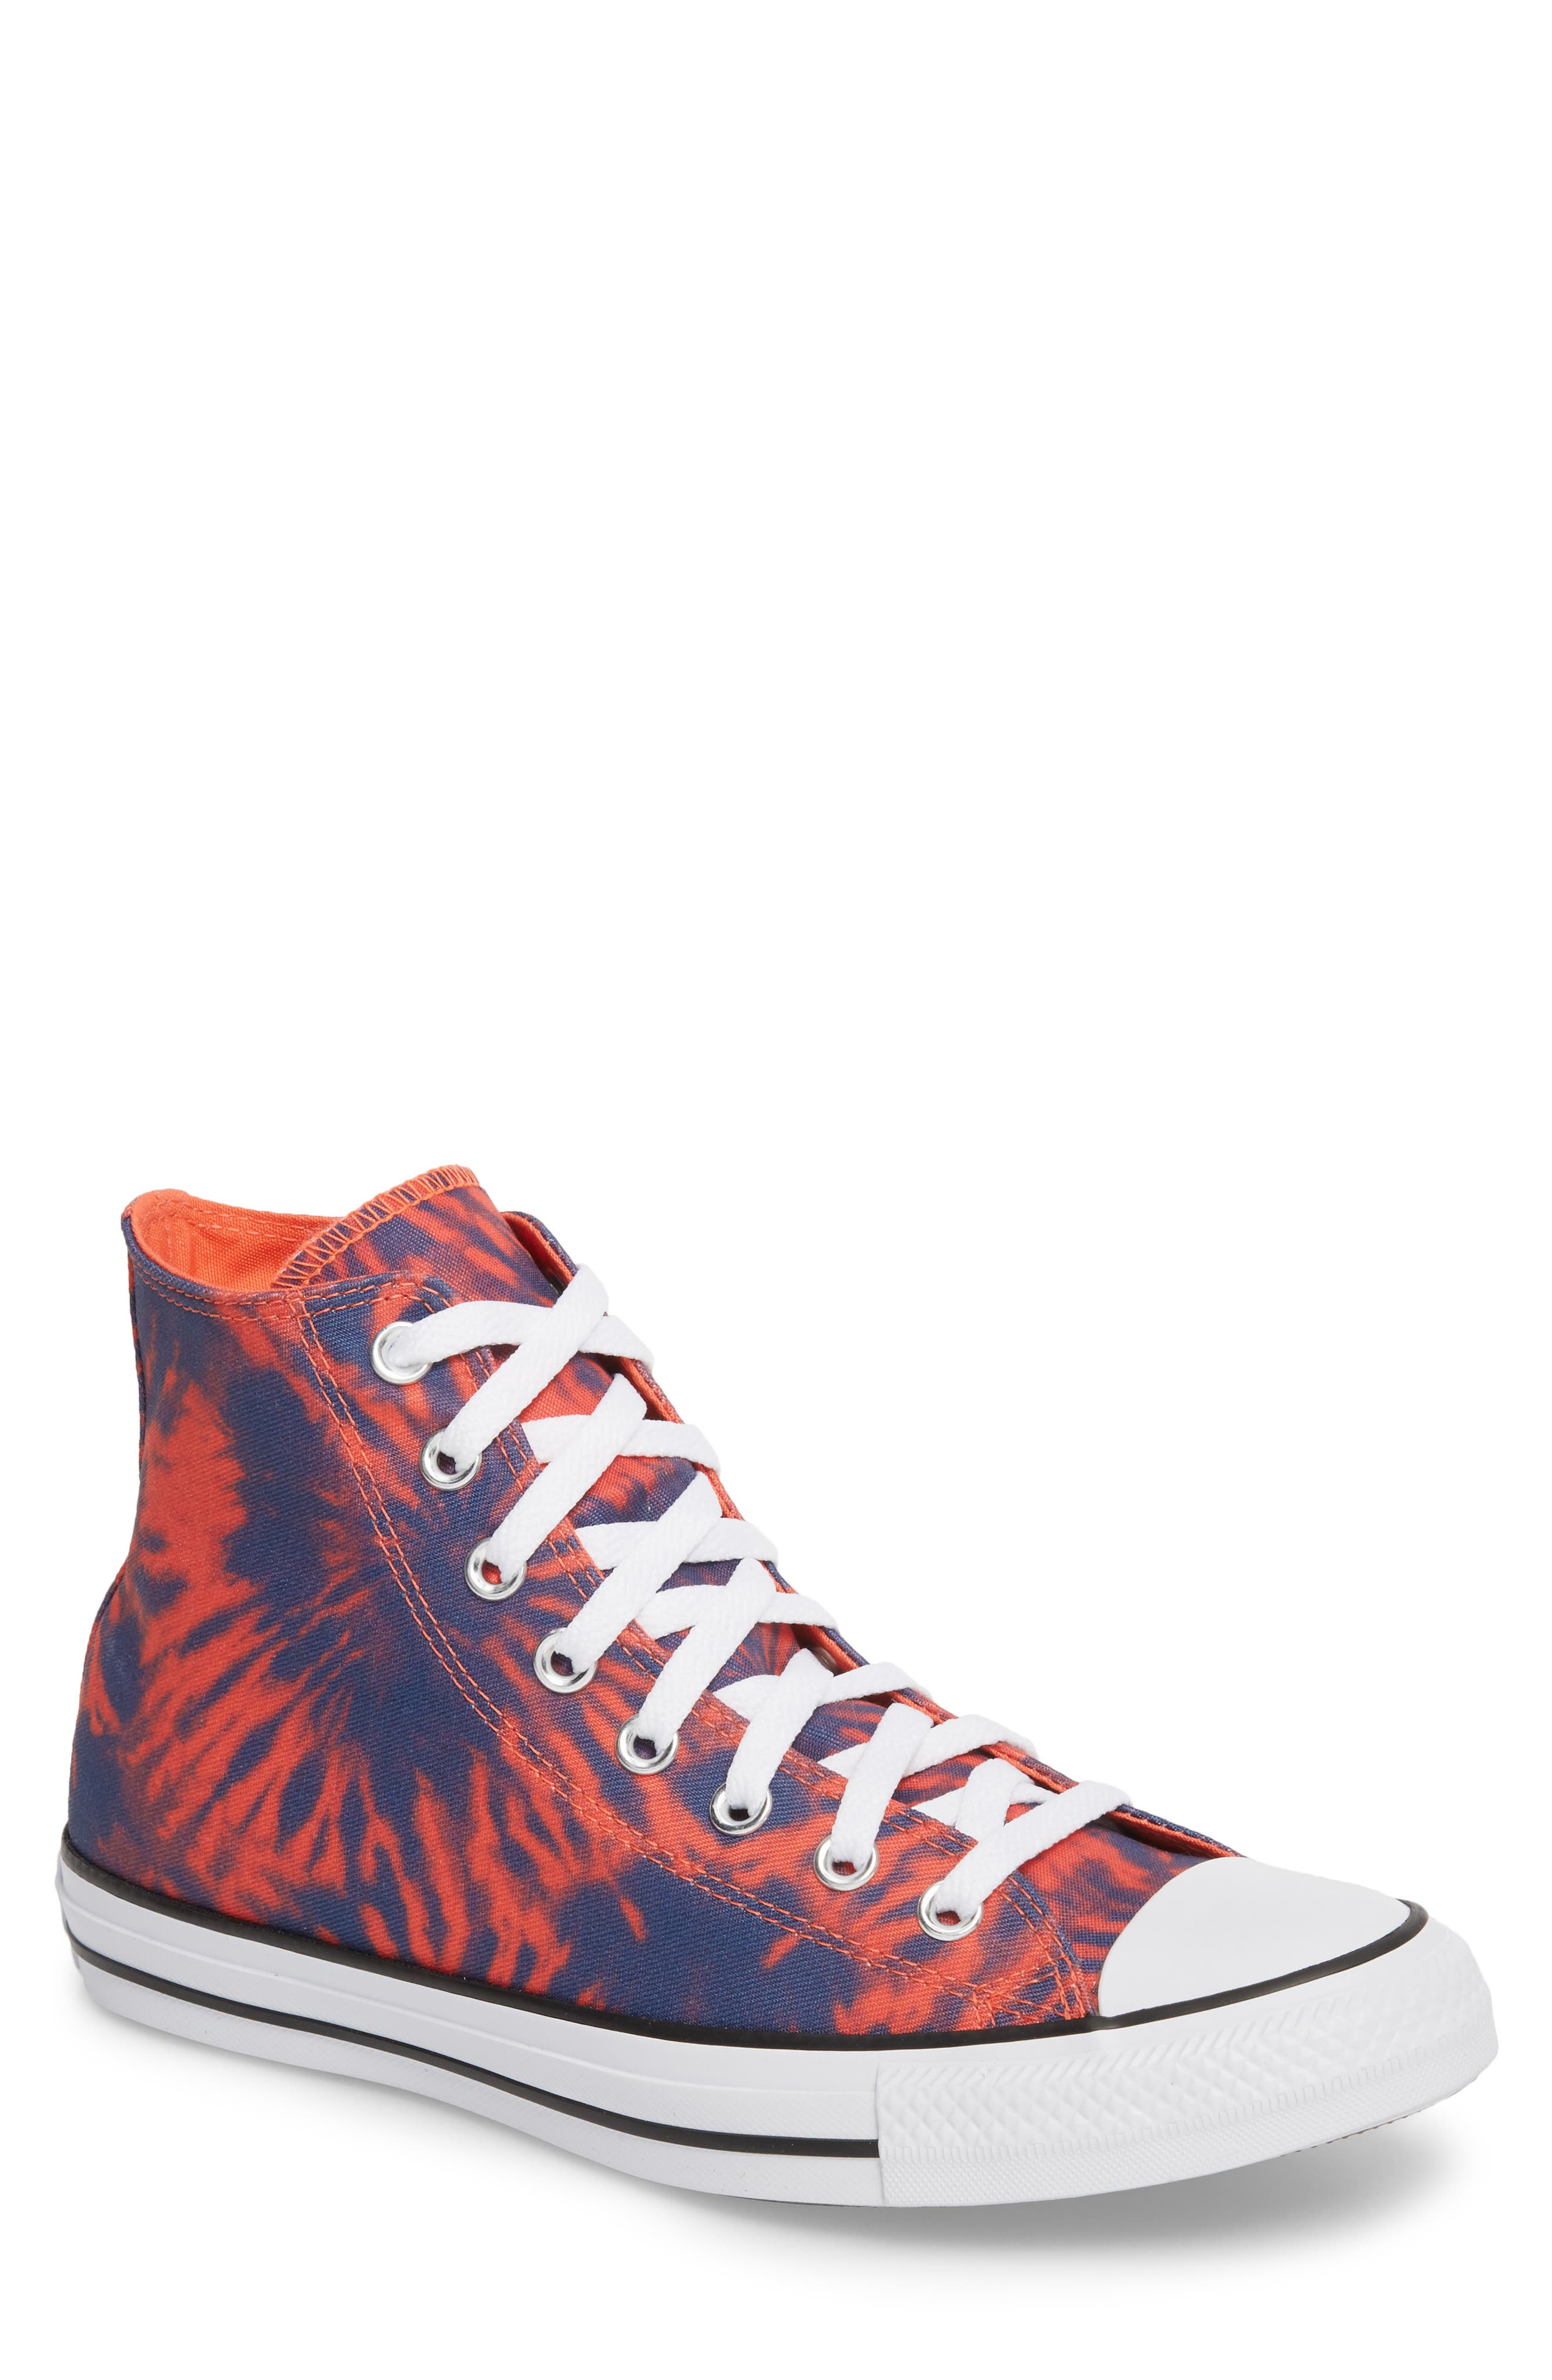 Chuck Taylor<sup>®</sup> All Star<sup>®</sup> Tie Dye High Top Sneaker,                             Main thumbnail 1, color,